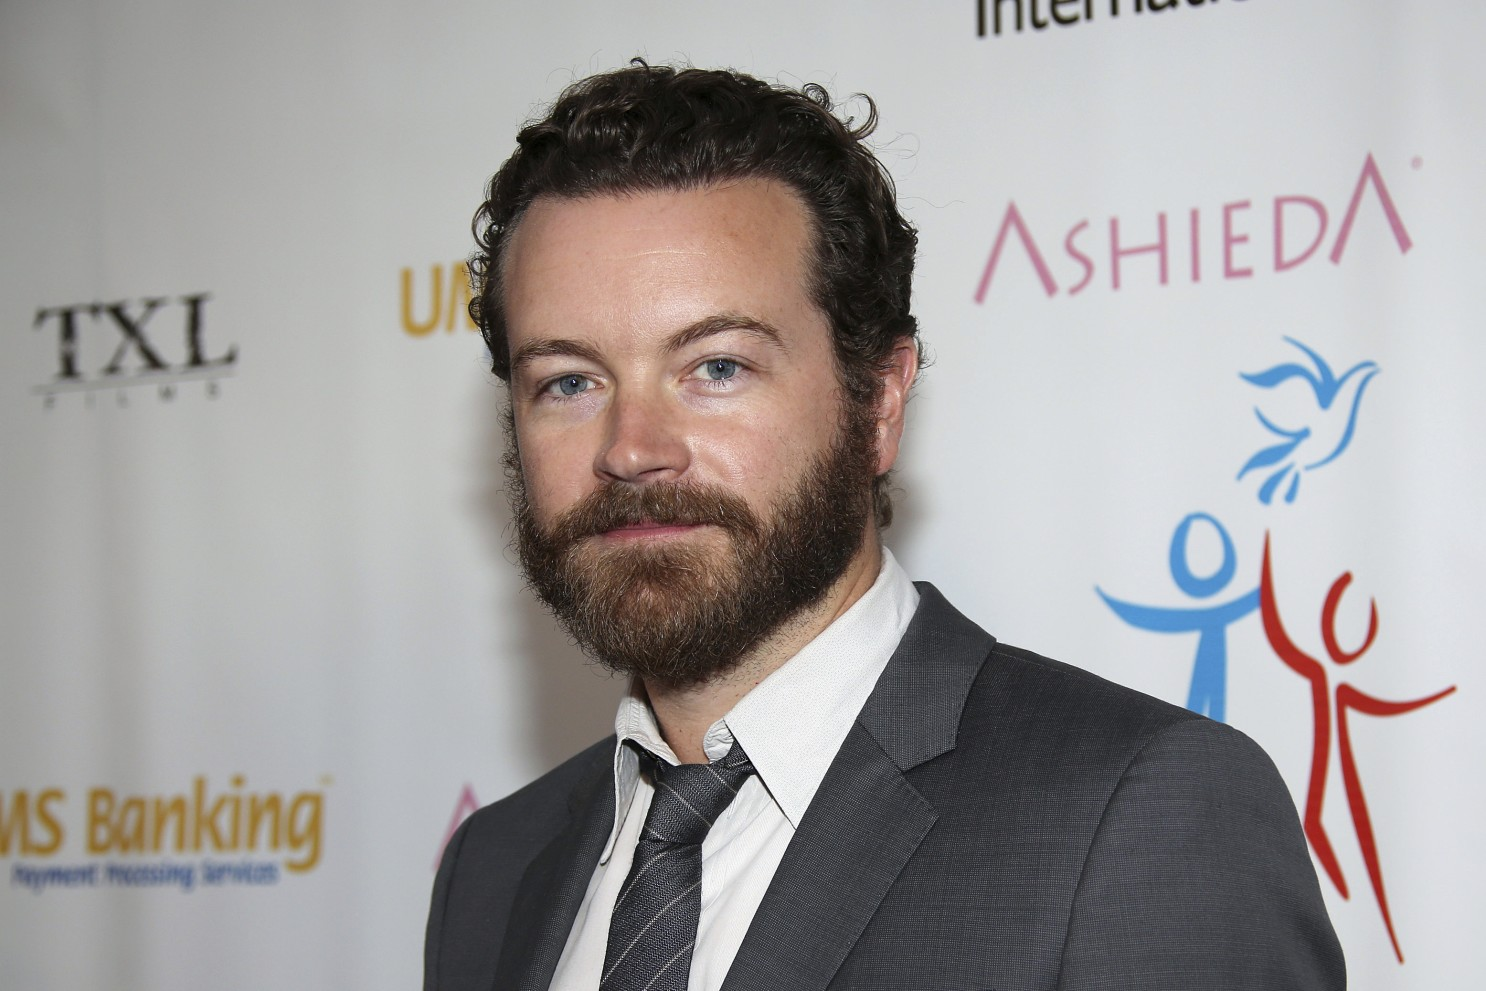 Actor Danny Masterson must stand trial on 3 rape charges